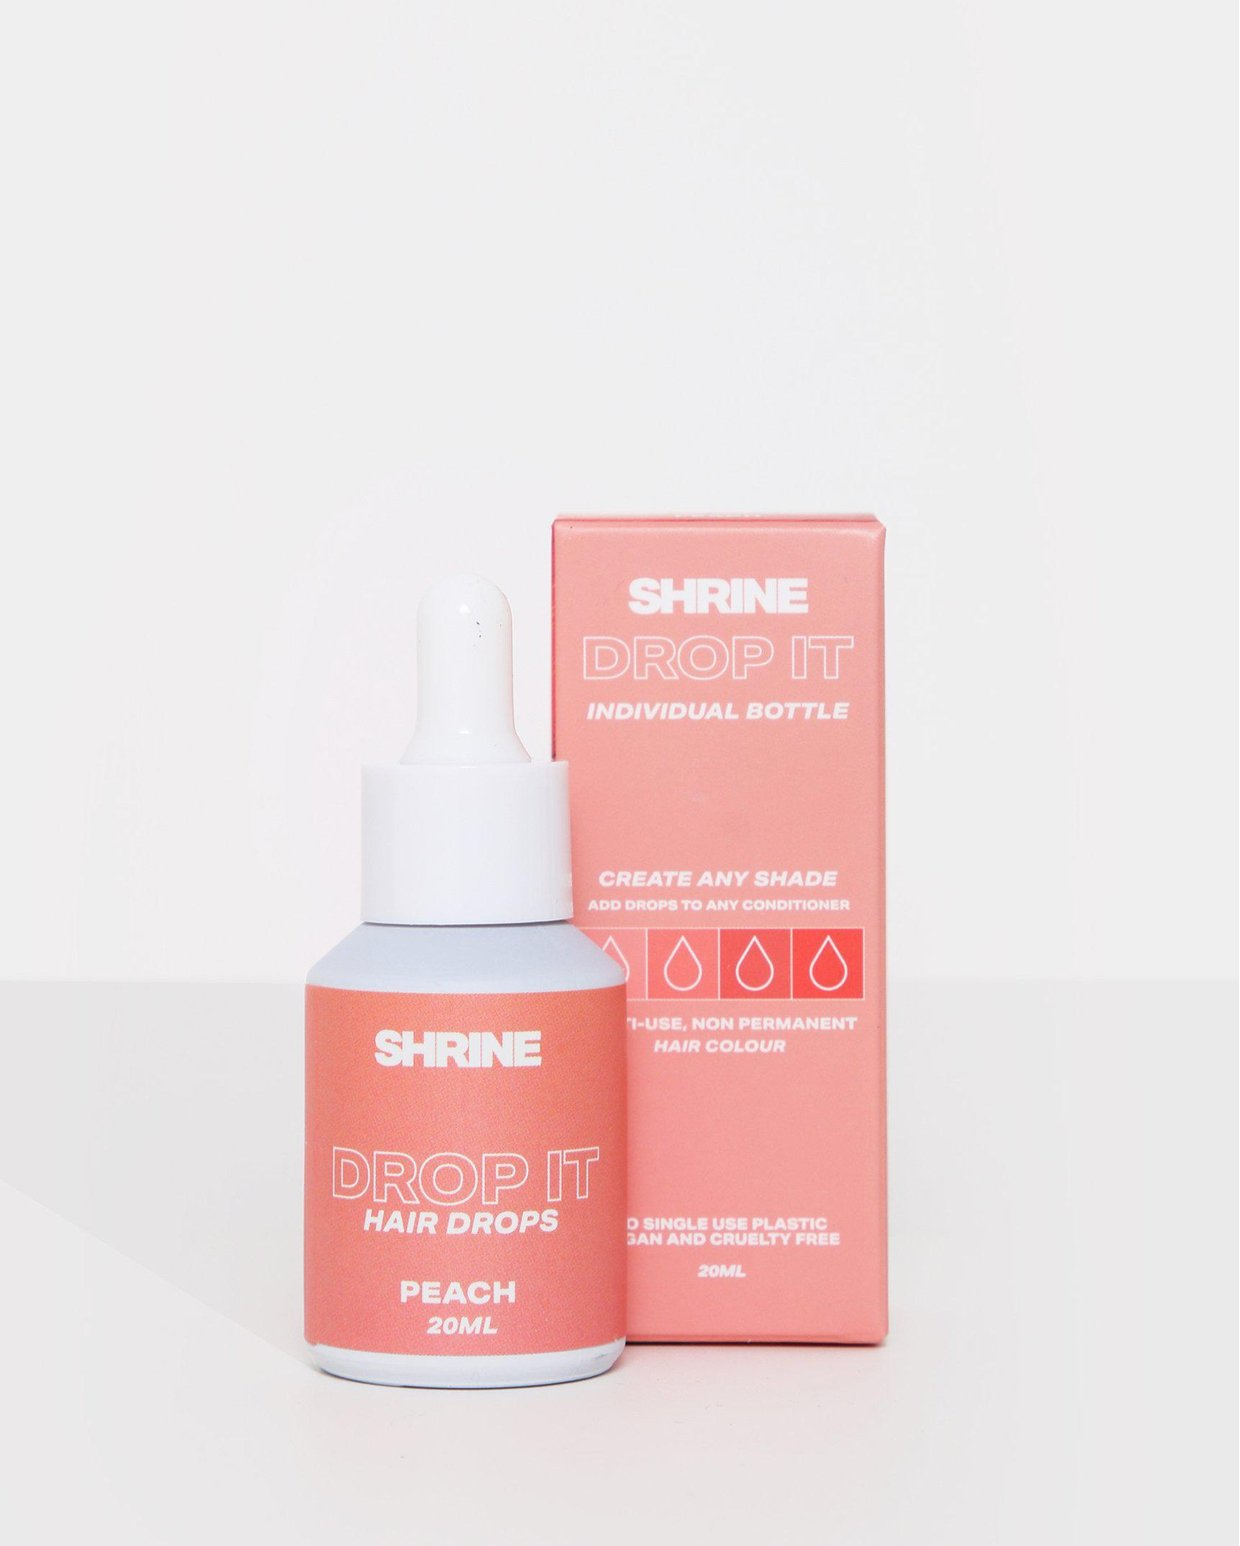 Peach Hair Dye - Individual Bottle